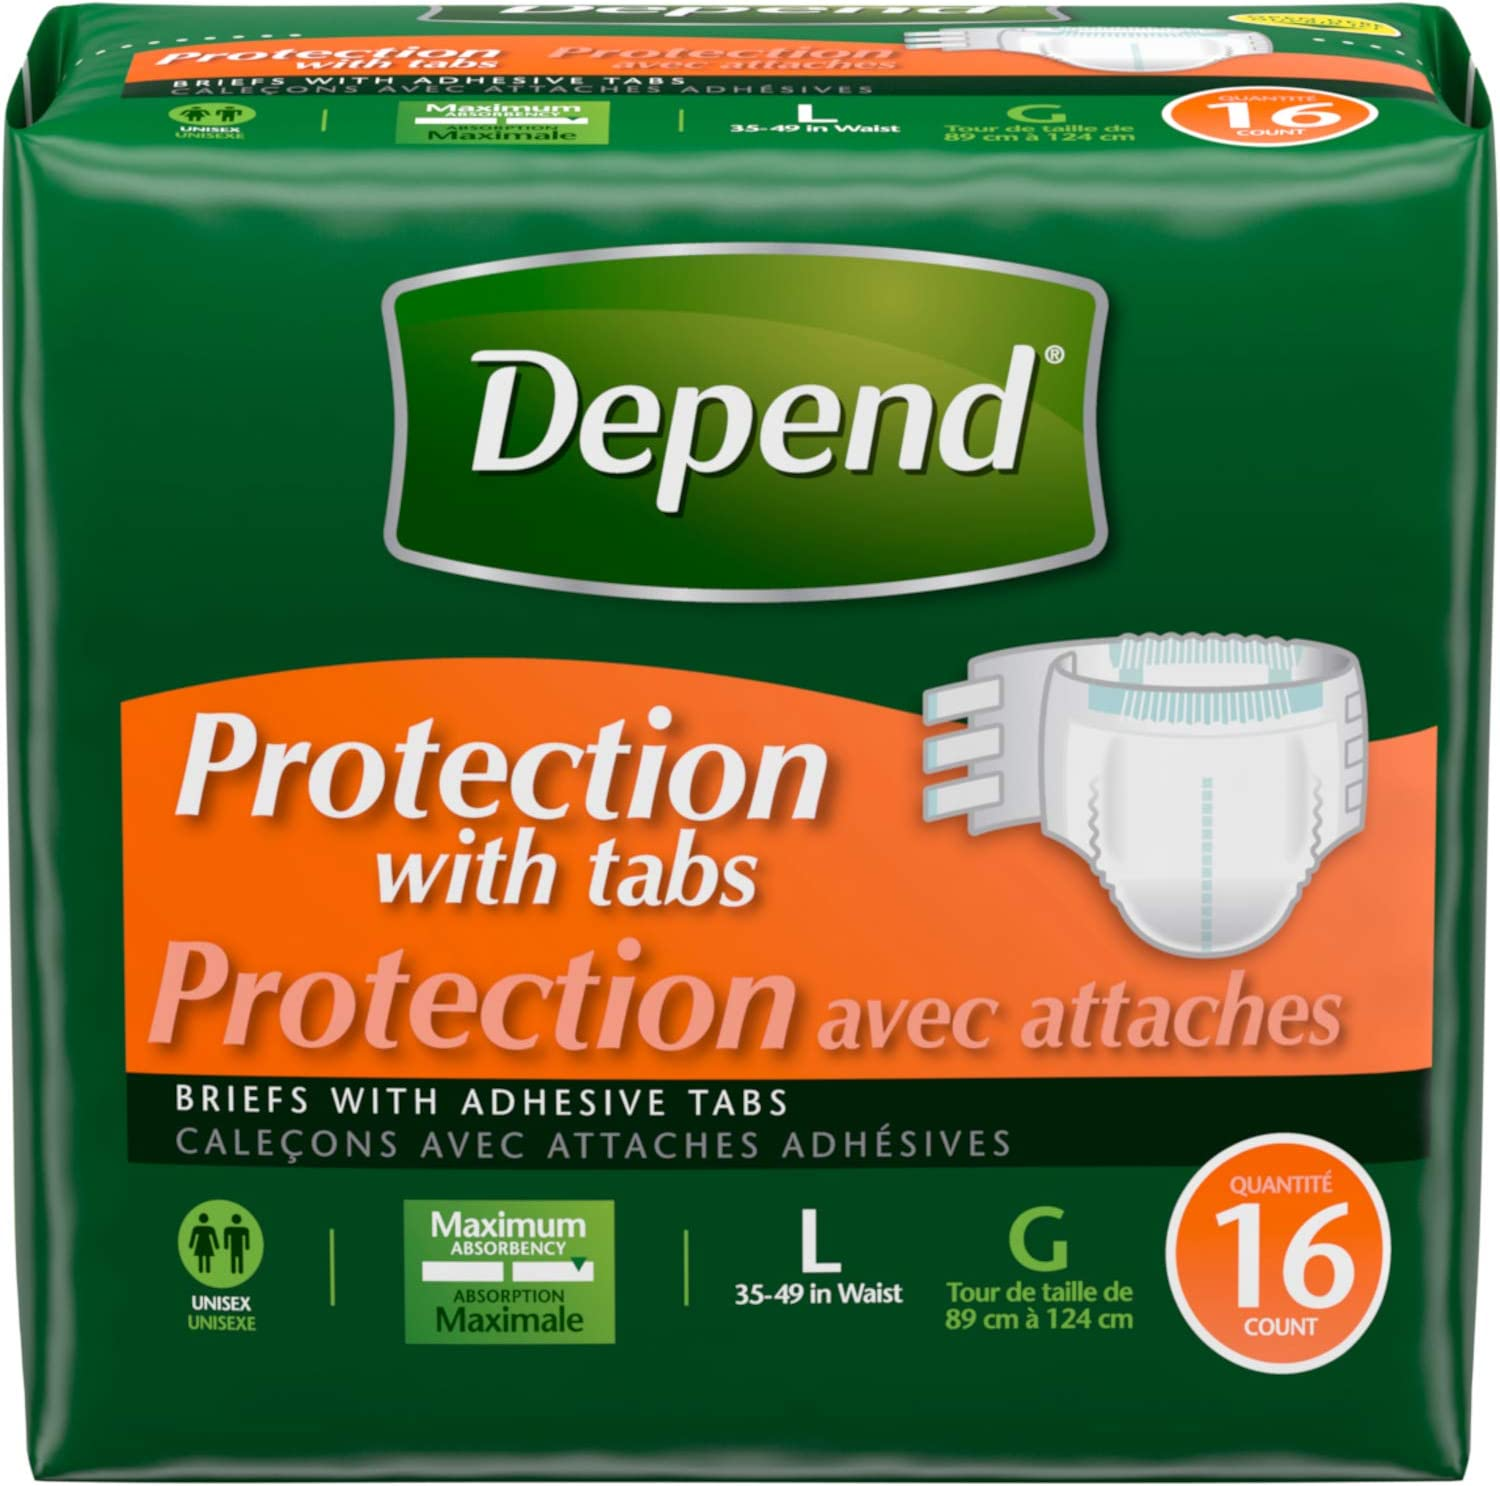 Depend Maximum Protection Brief With Easygrip Tapes Count Luxury Over item handling ☆ 16